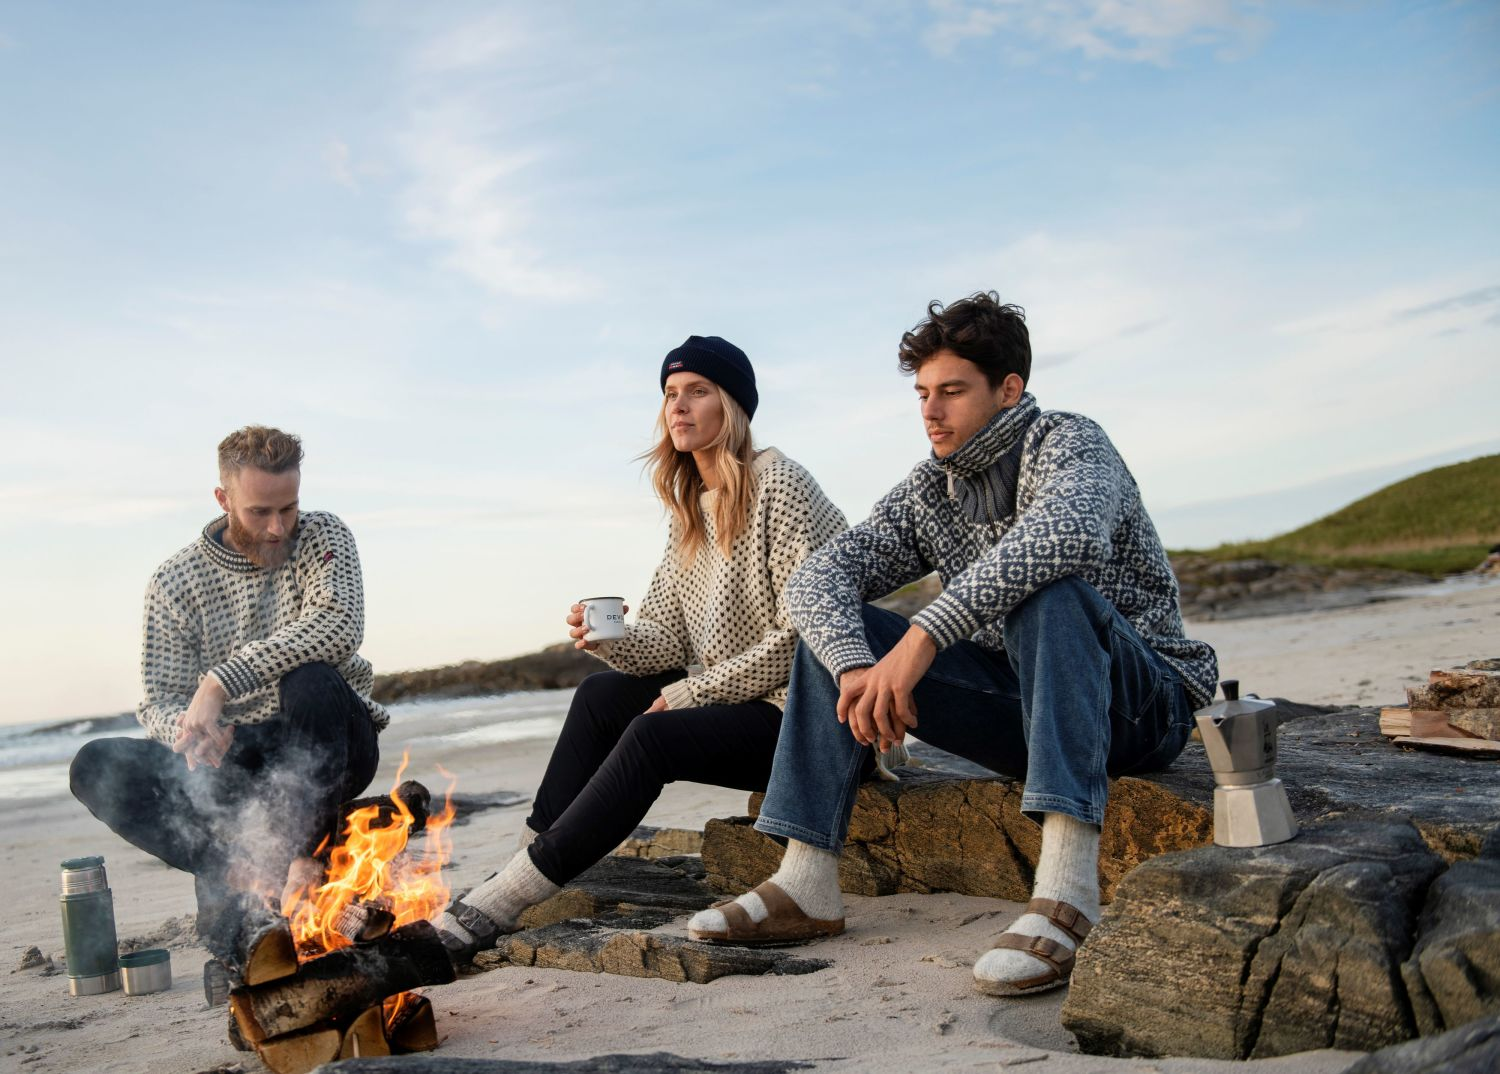 Young people at the beach with a bonfire, dressed in knitted sweaters. Photo: Devold.no